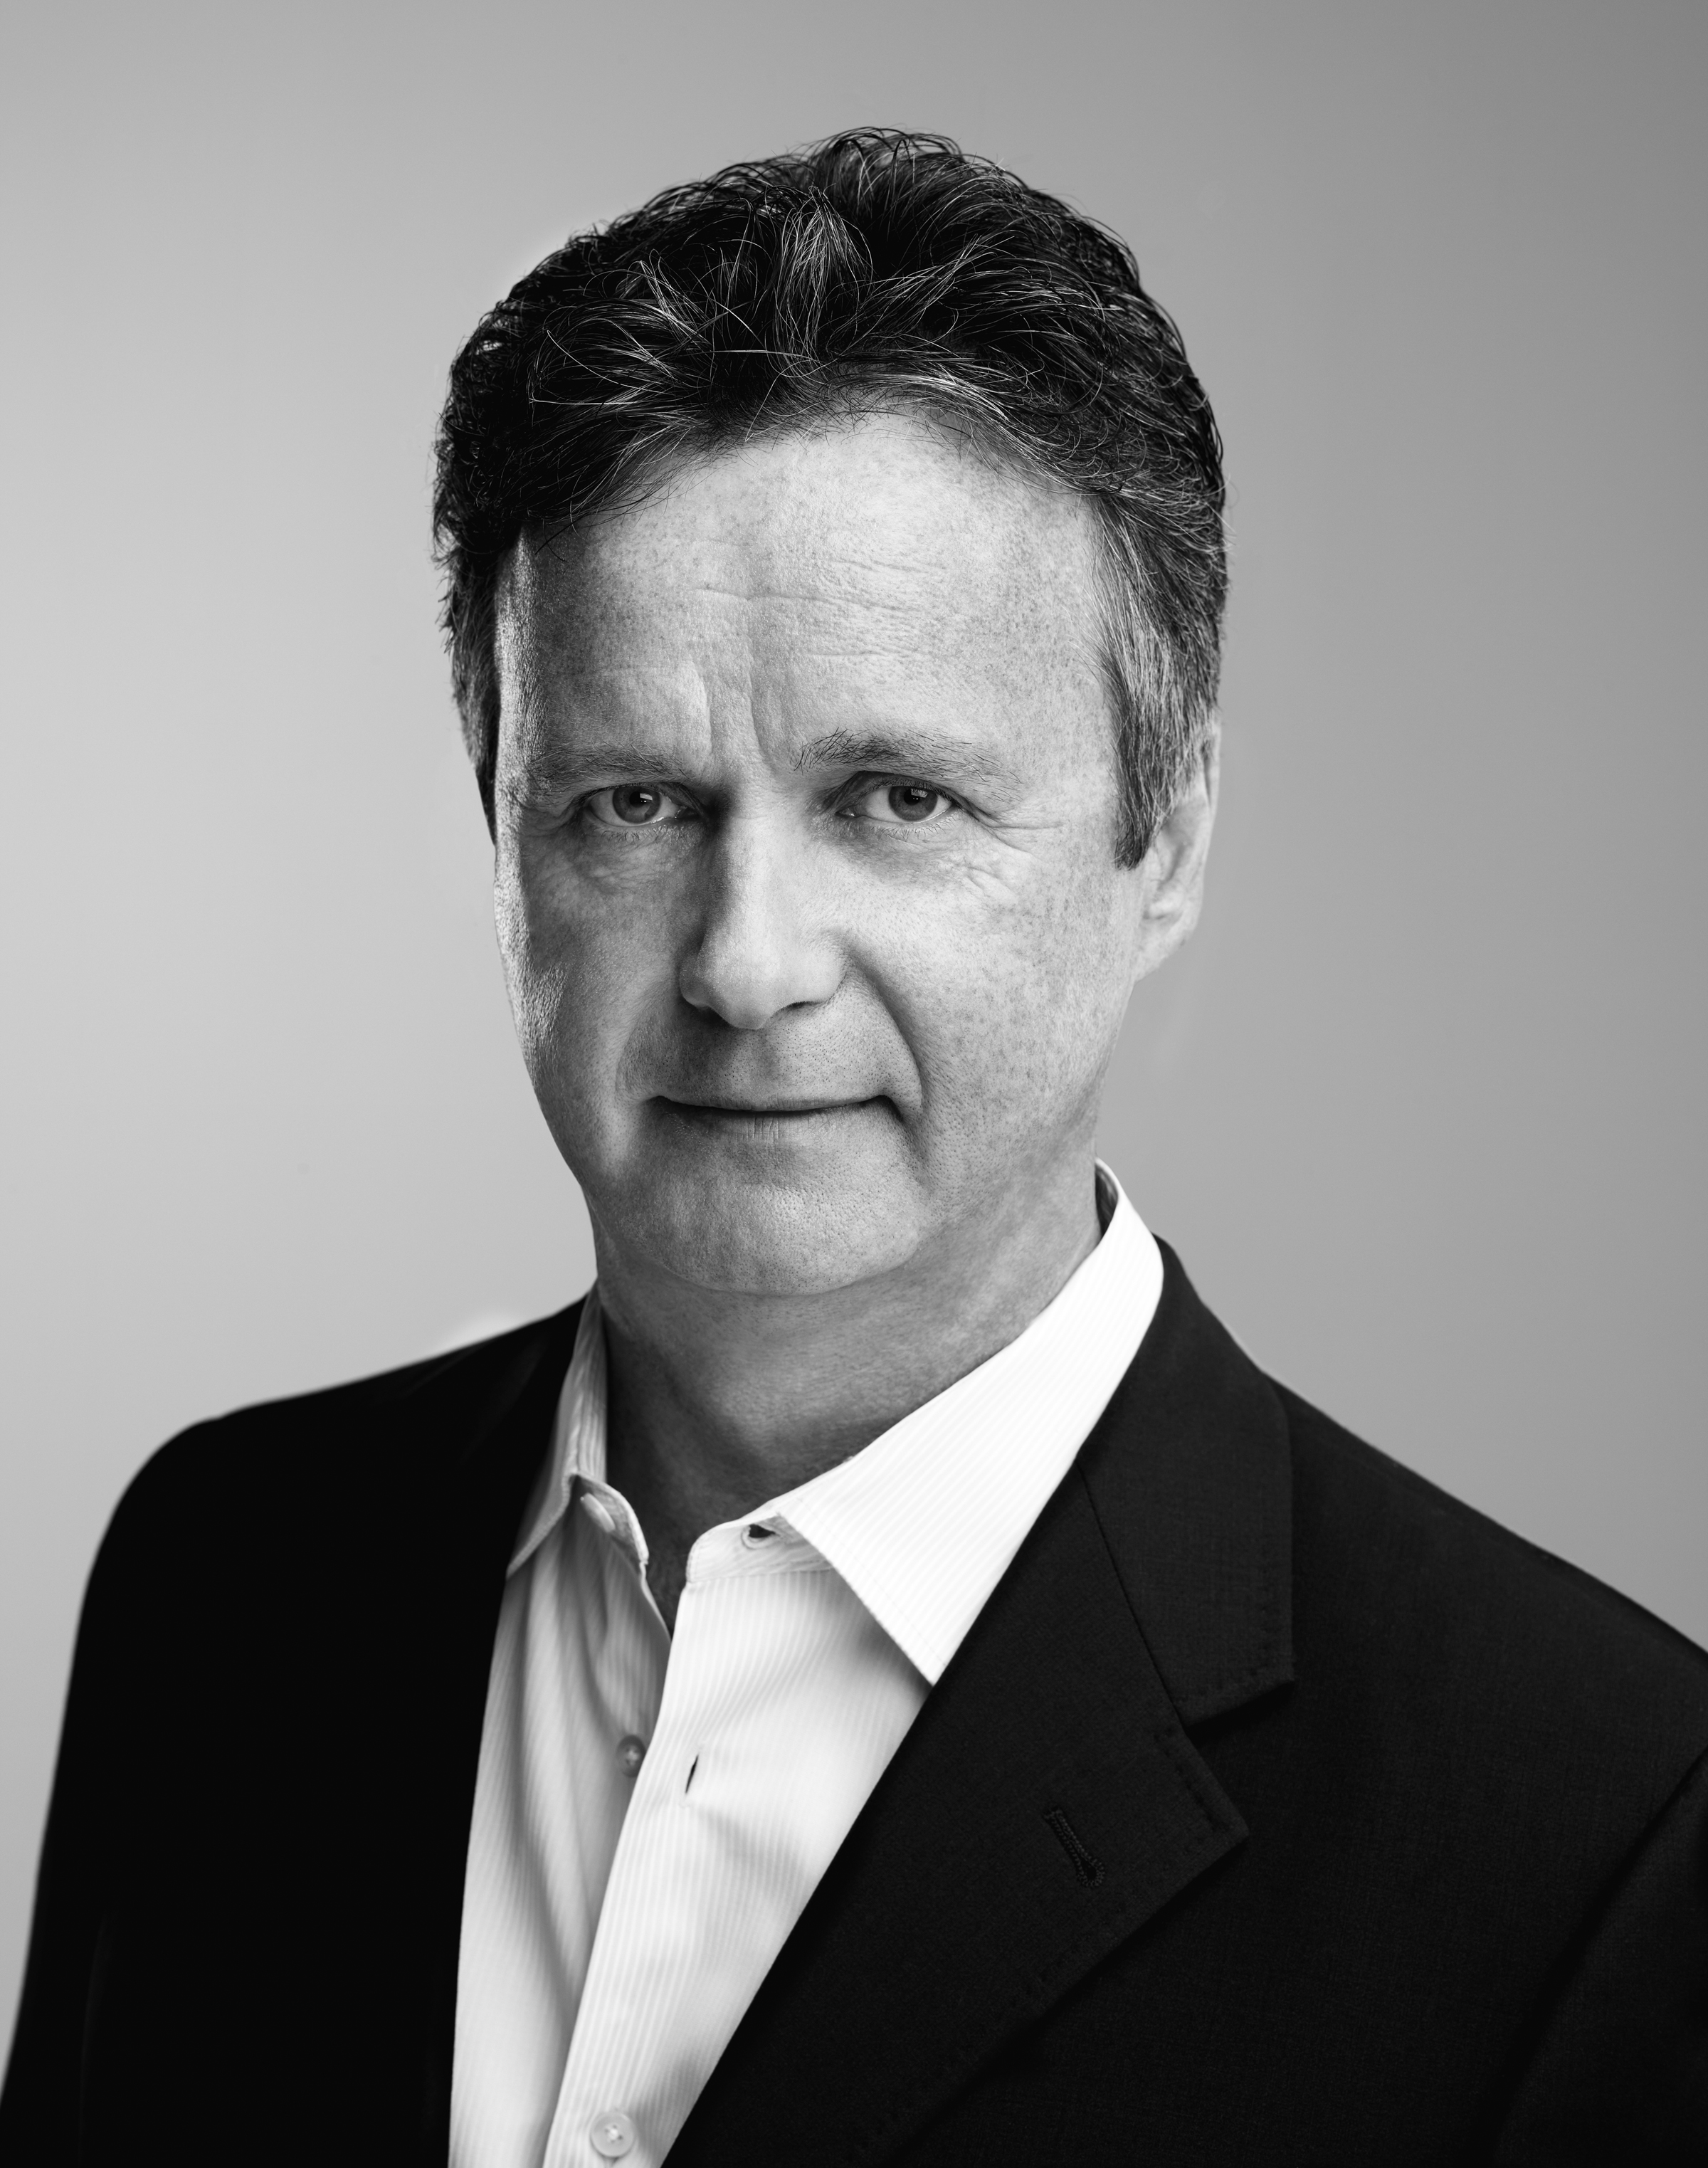 Memo Exclusive: An Interview with Karl- Heinz Pitsch, Sexy Hair President and CEO